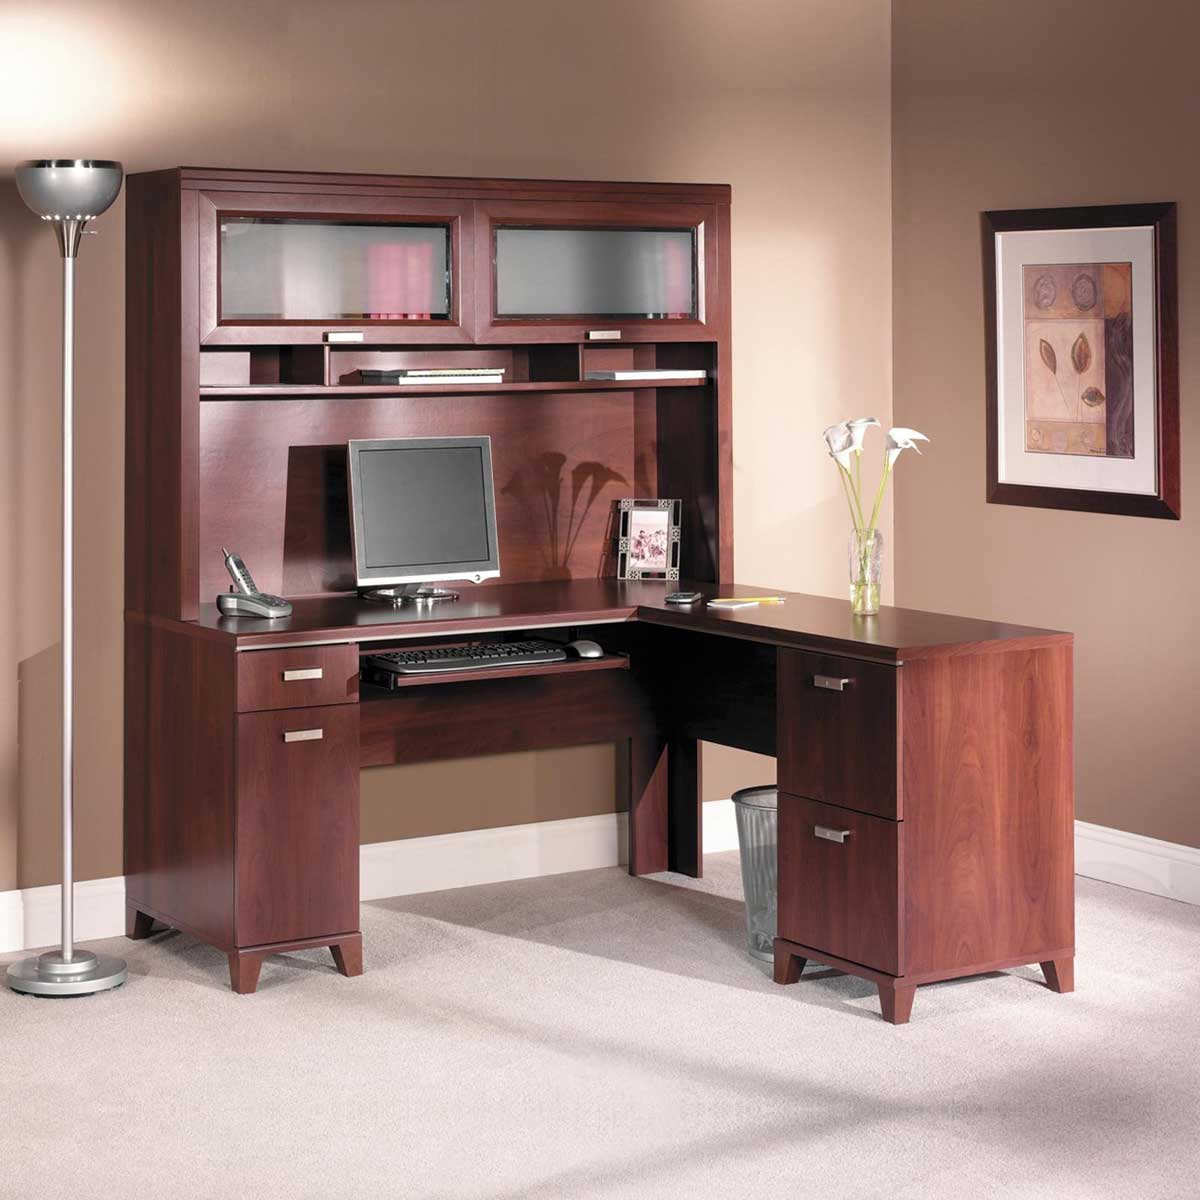 Gallery Image of Home Computer Desks